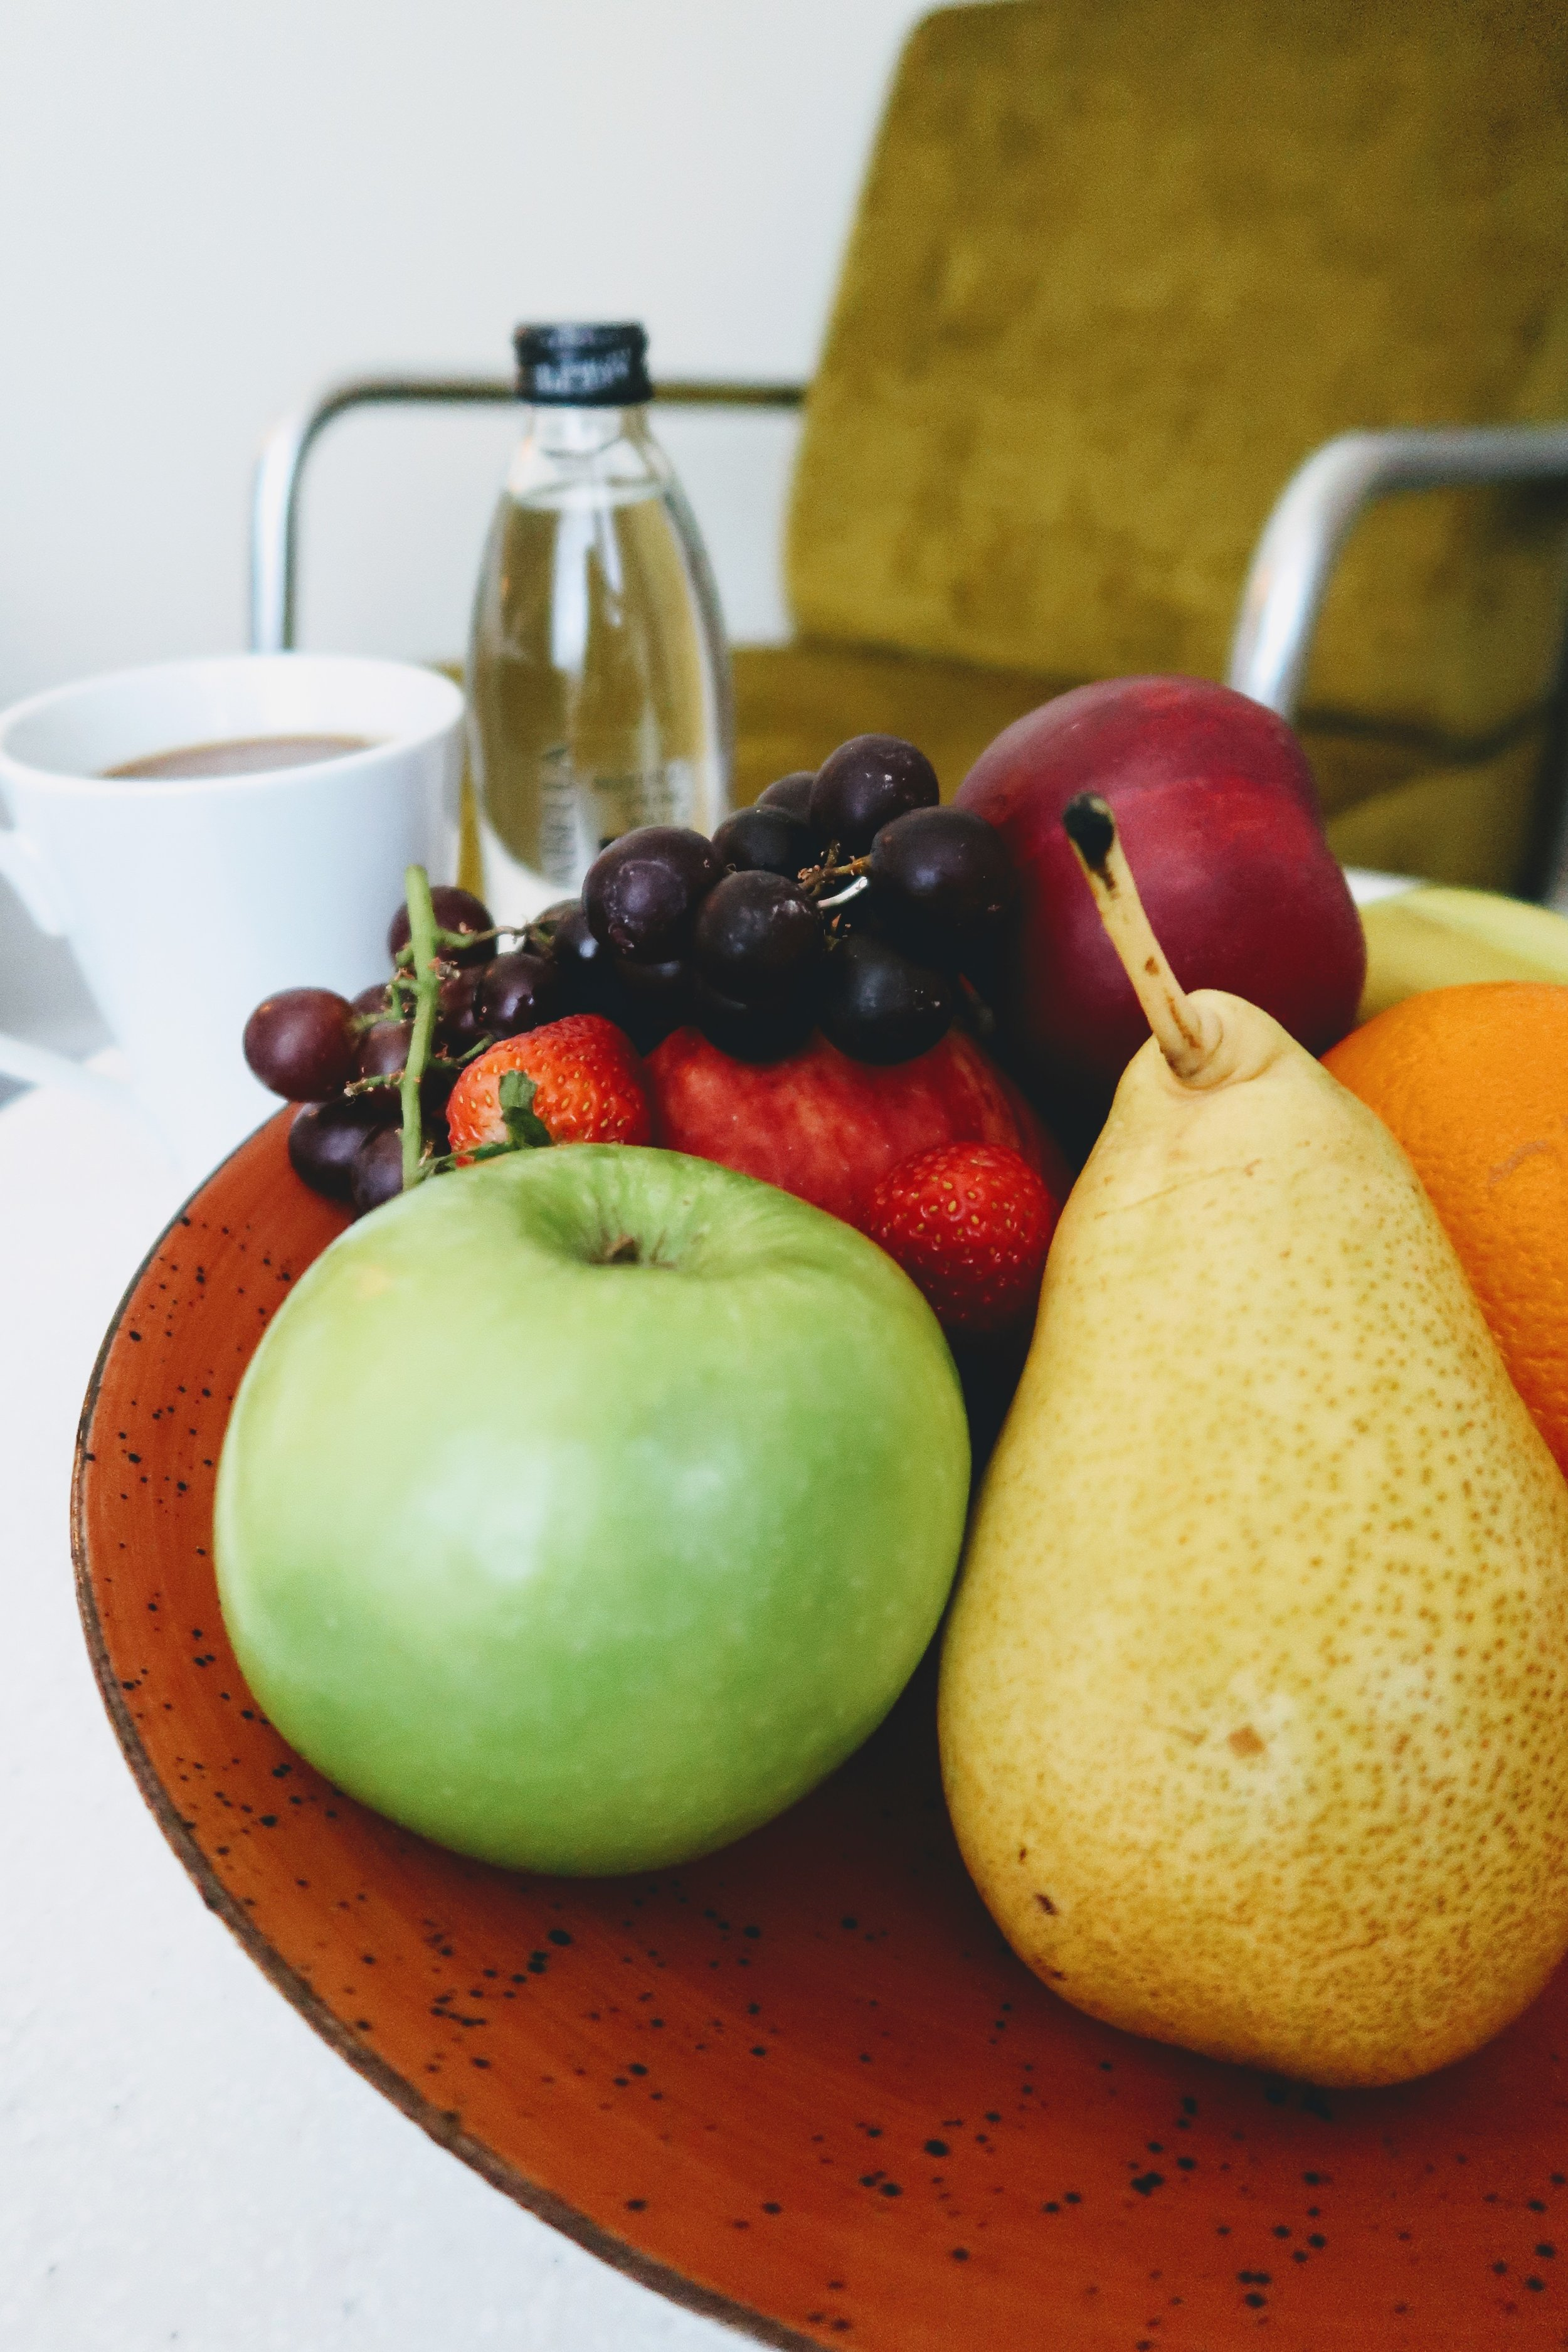 Welcomed with a VIP amenity of fruit platter.